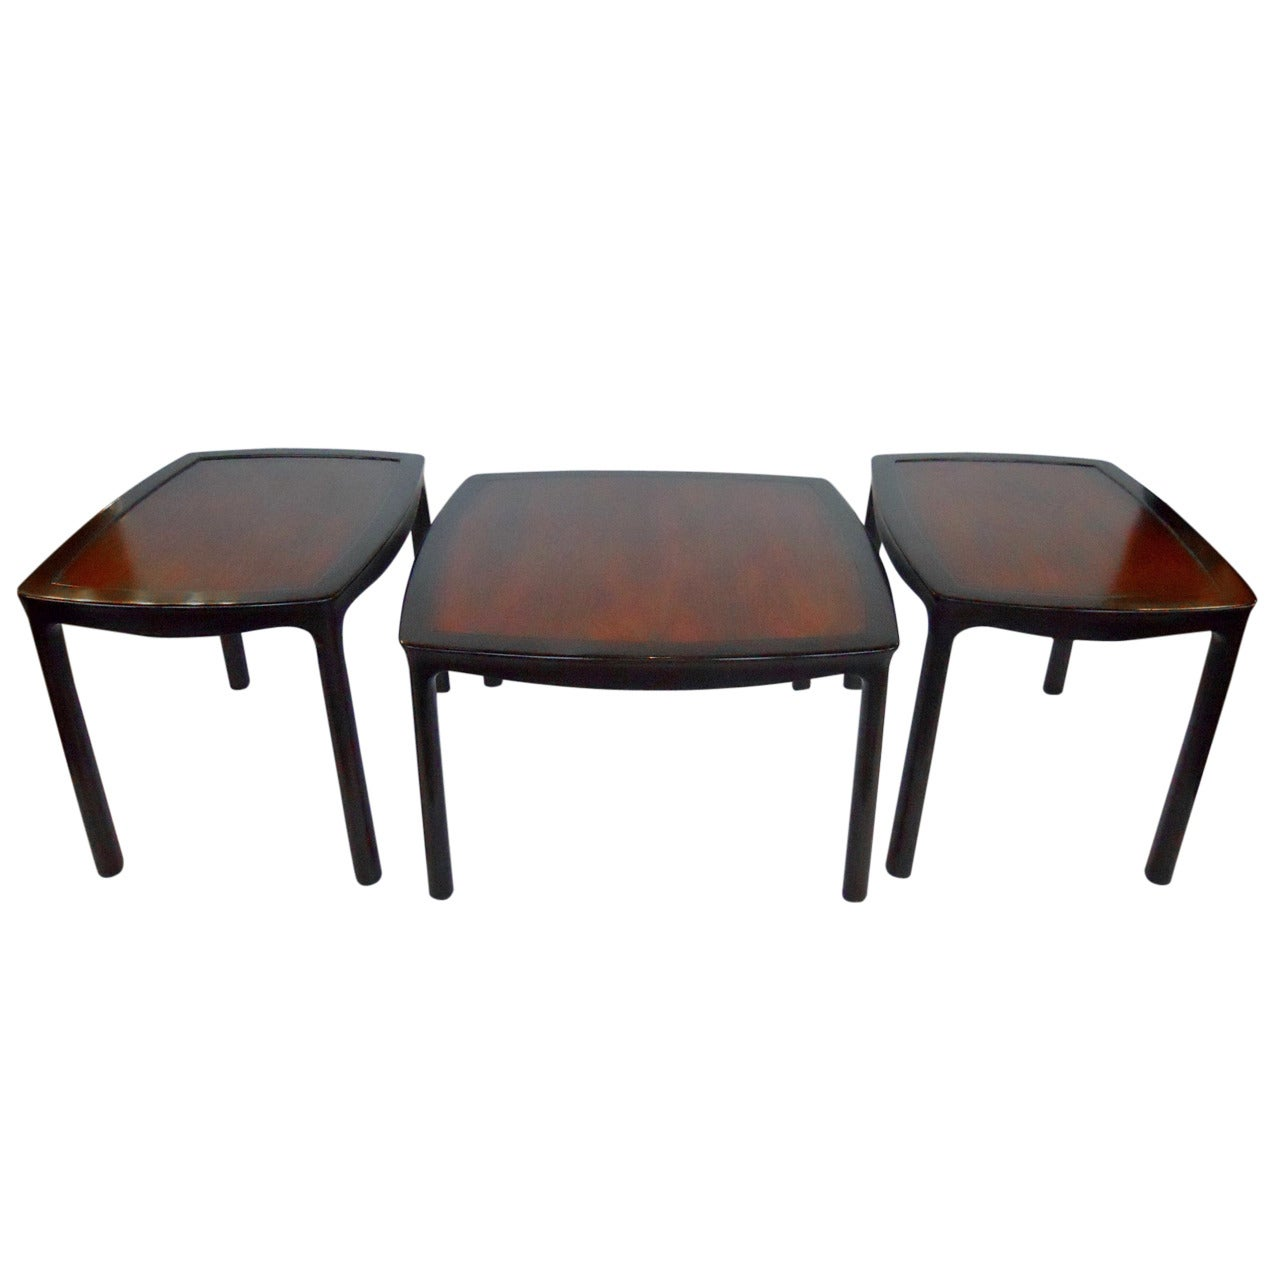 Versatile Set of Coffee Table and Two Side Tables by Dunbar